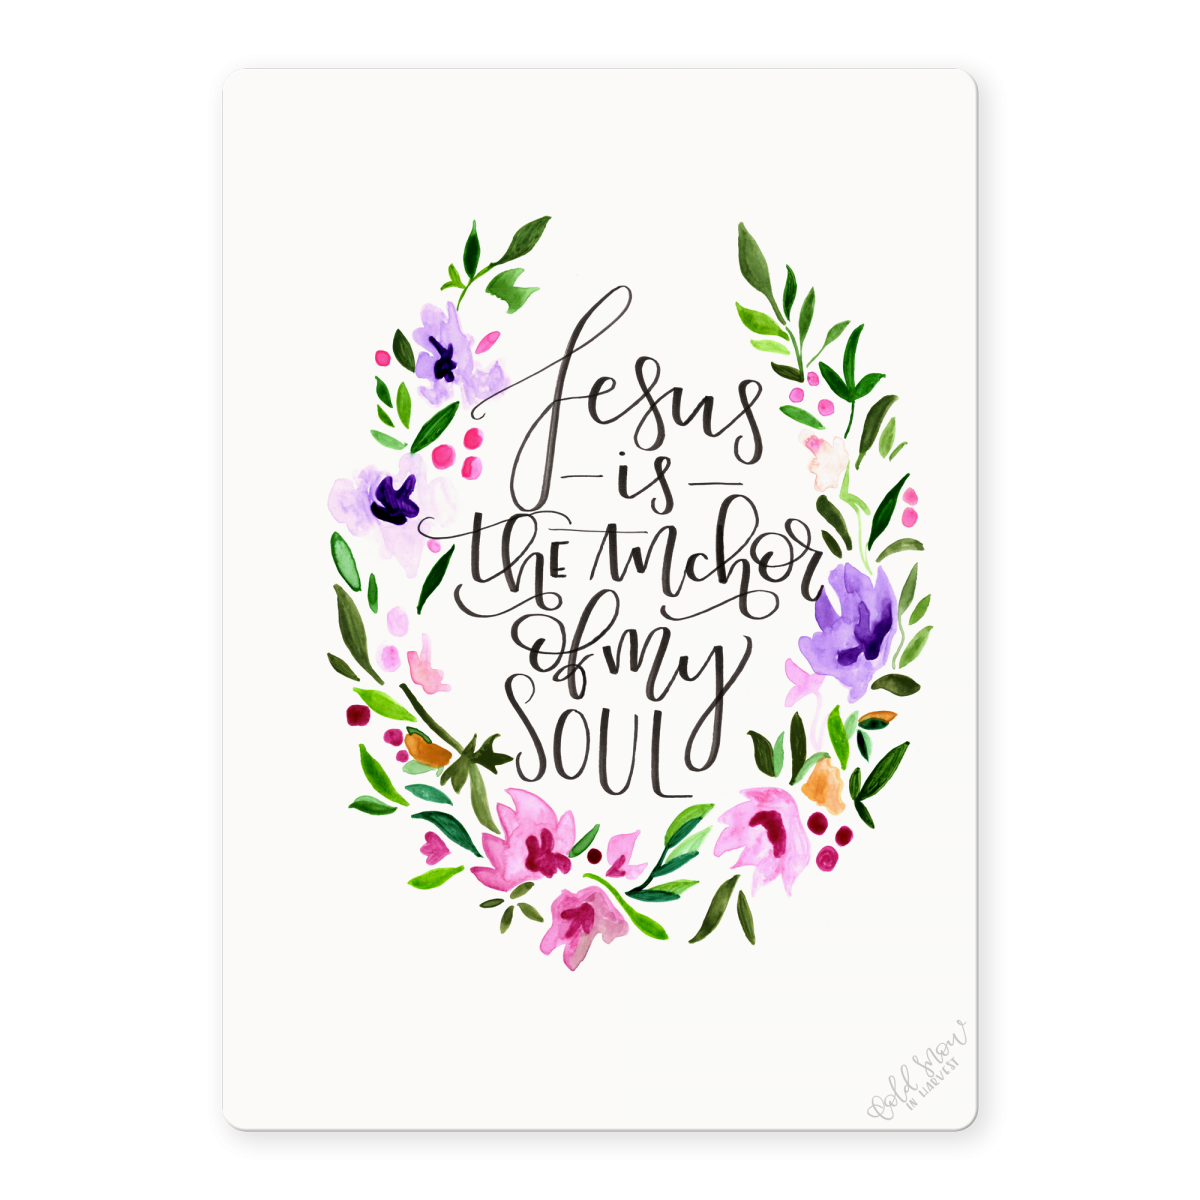 PRAYER JOURNAL DIVIDERS BY COLDSNOWINHARVEST